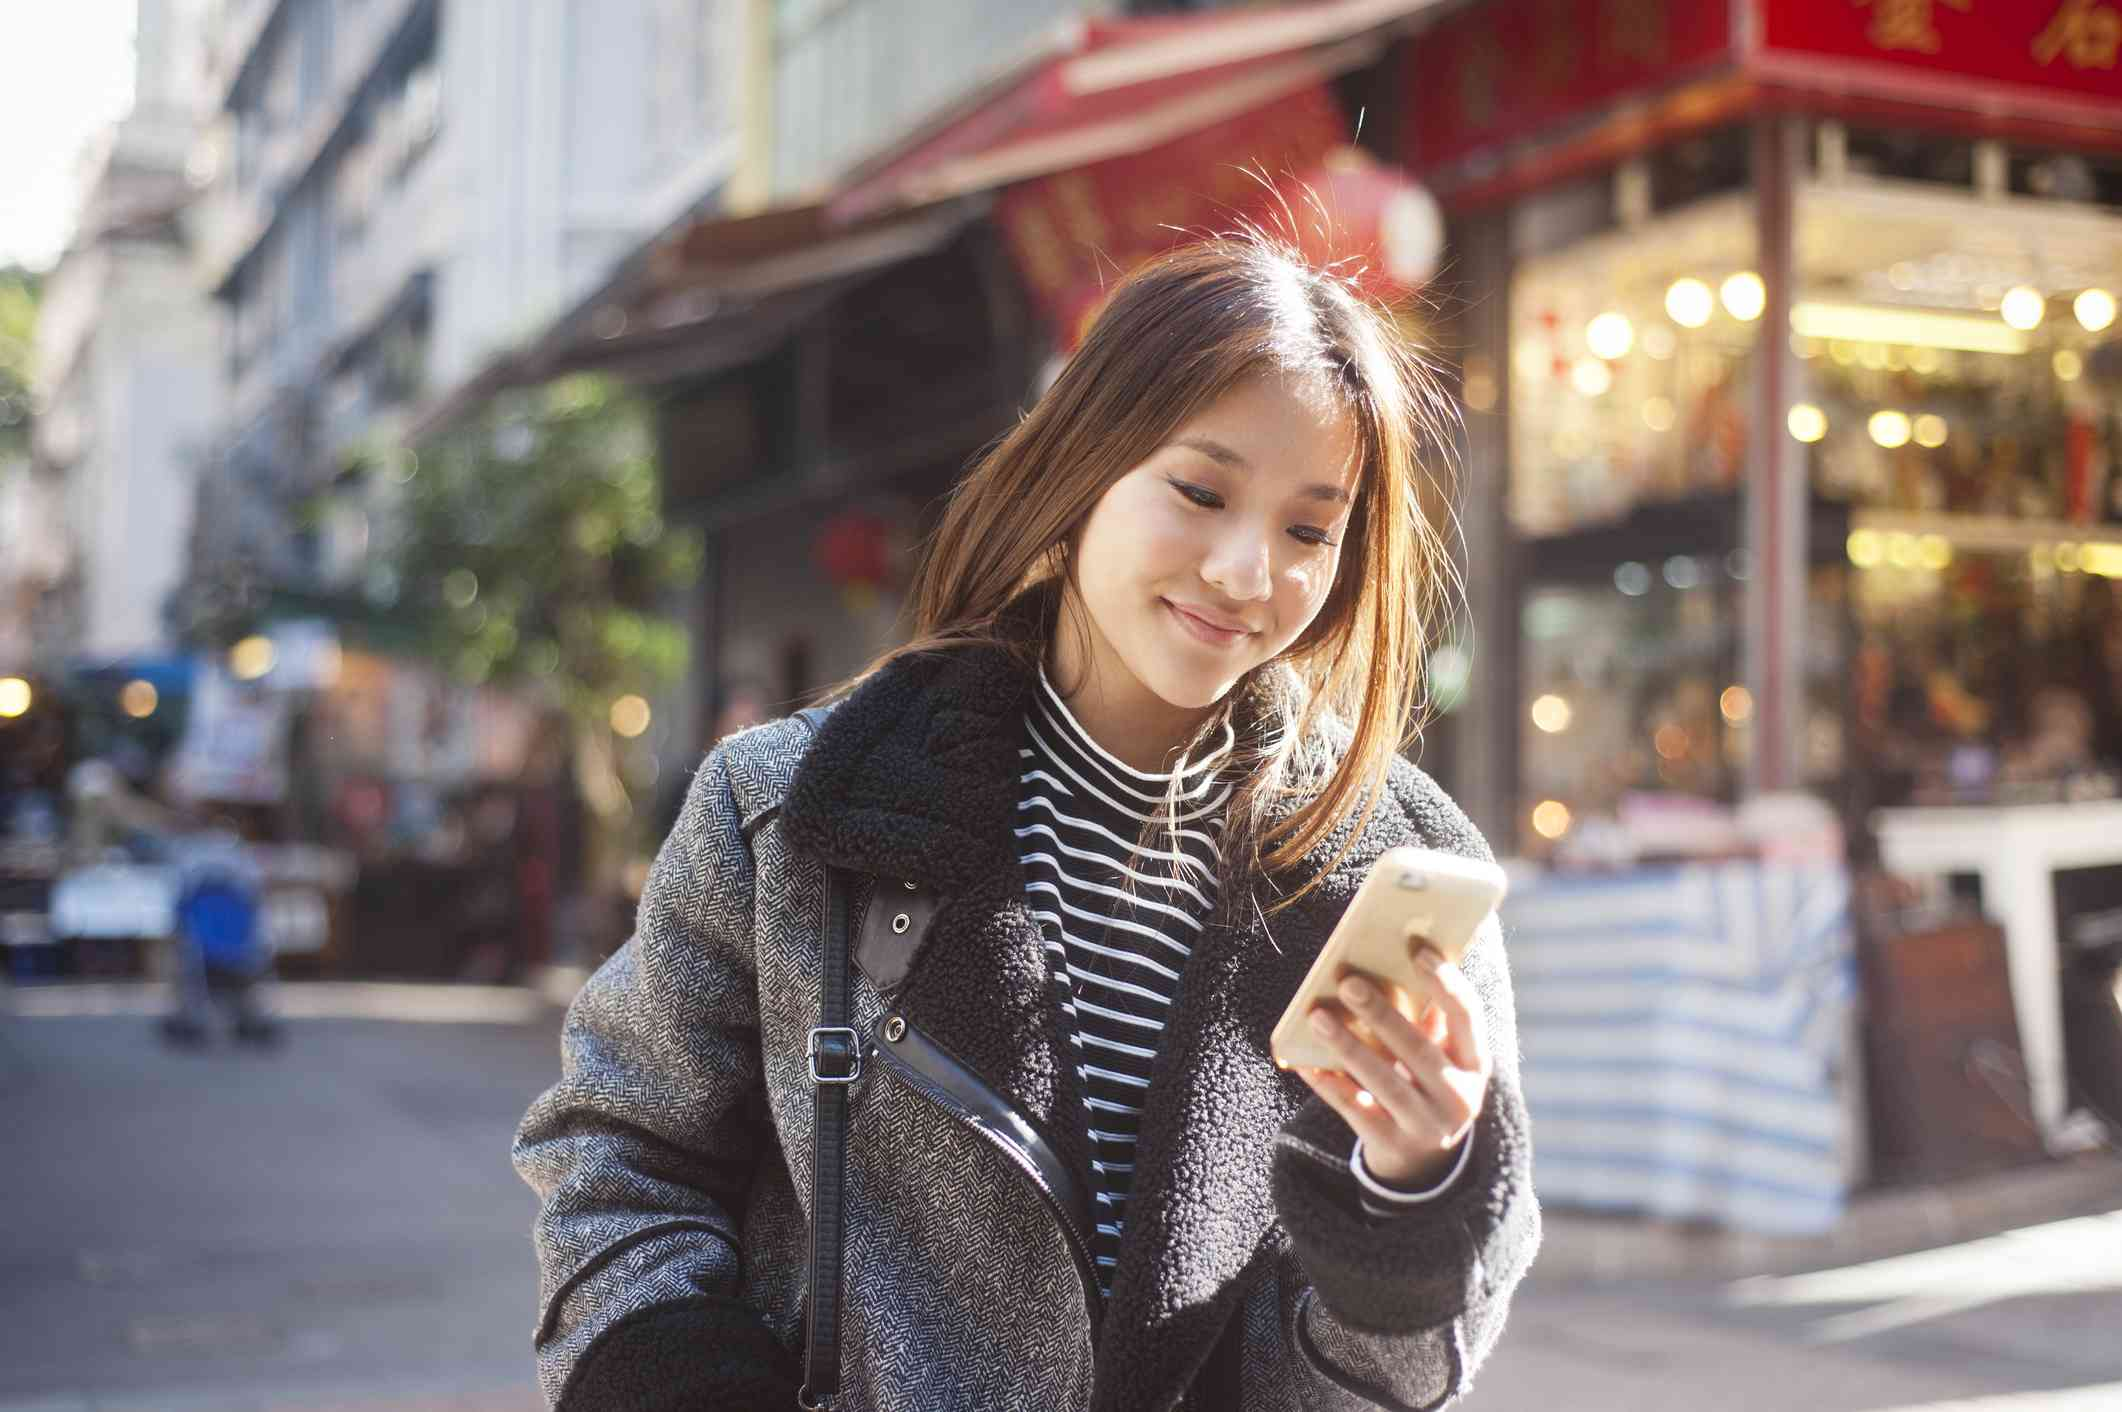 young person in fur jacket on the street looking at iPhone